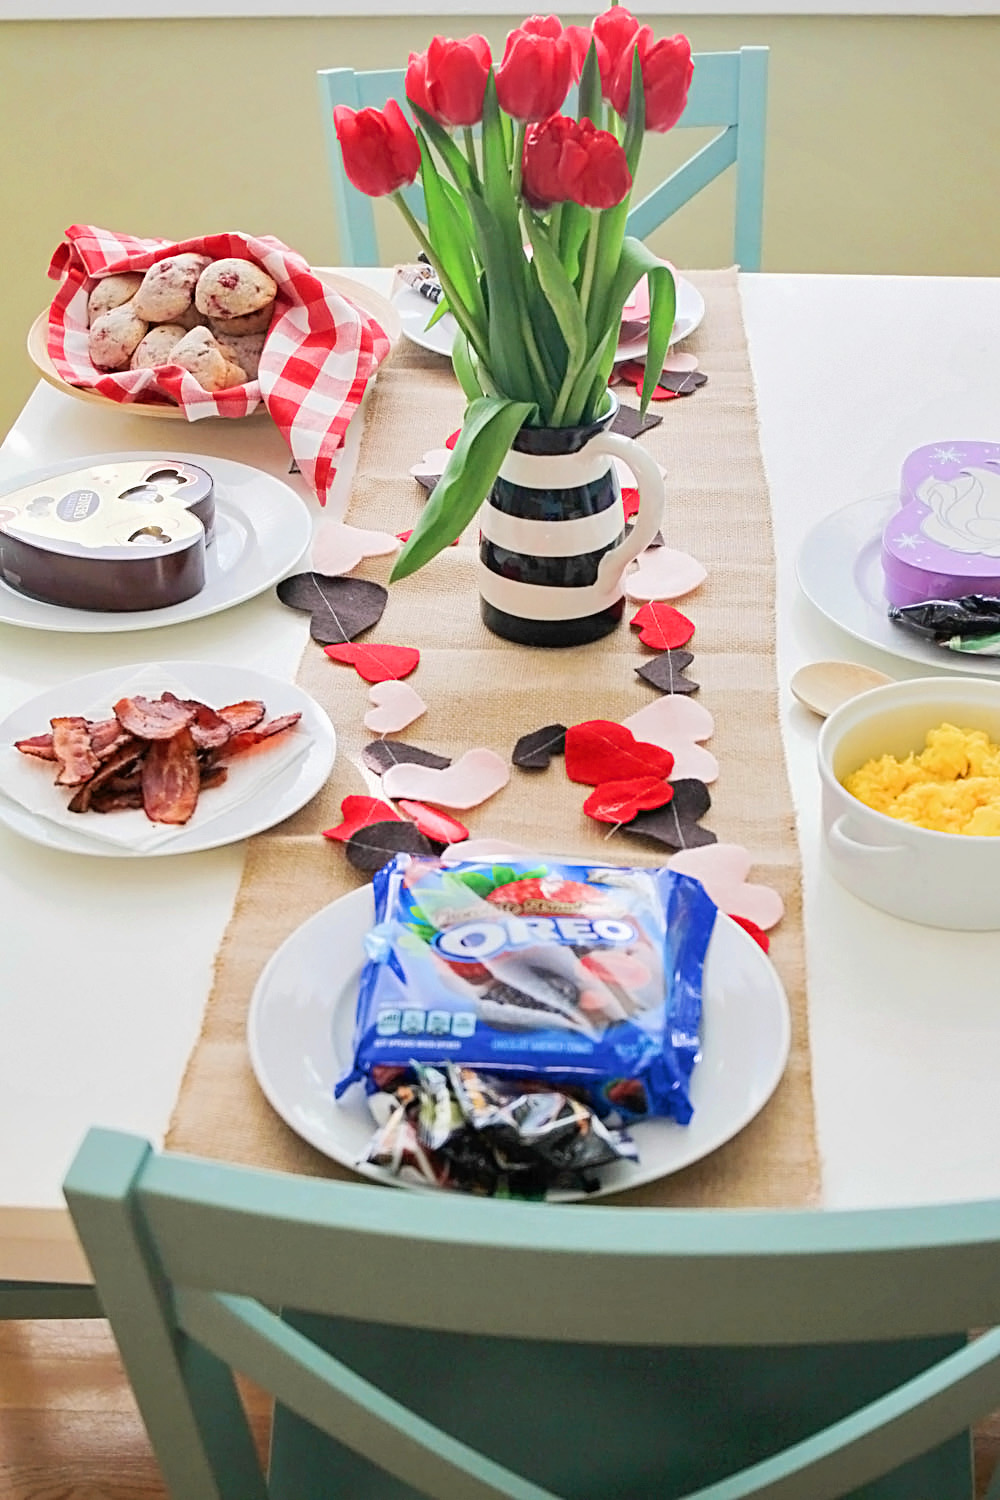 A fun Valentine's Day breakfast doesn't have to be difficult or complicated! Check out these fun ideas, plus an easy recipe for delicious raspberry almond muffins!